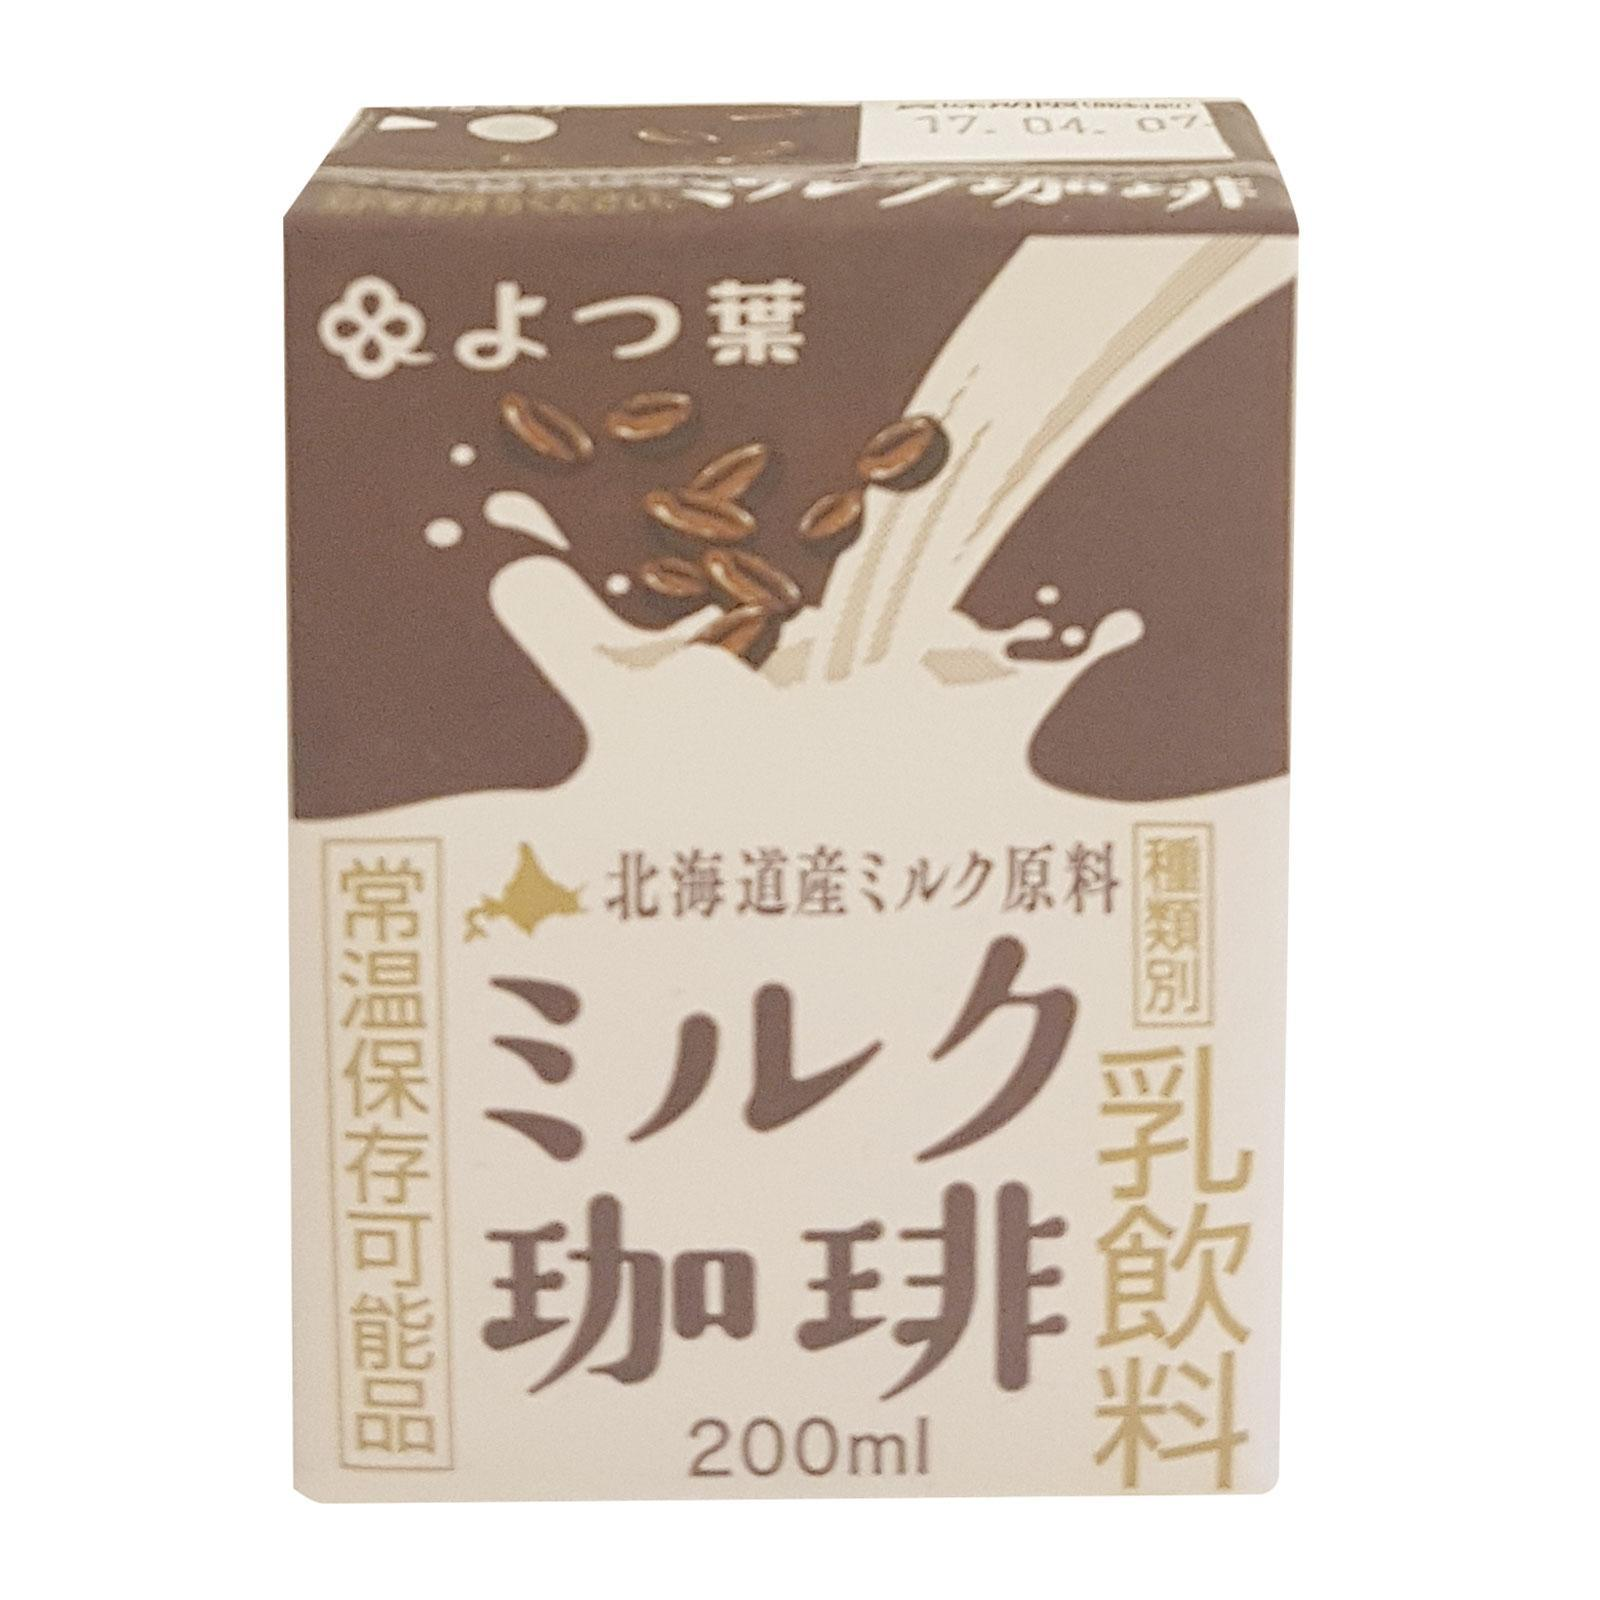 Yotsuba Milk Coffee By Redmart.